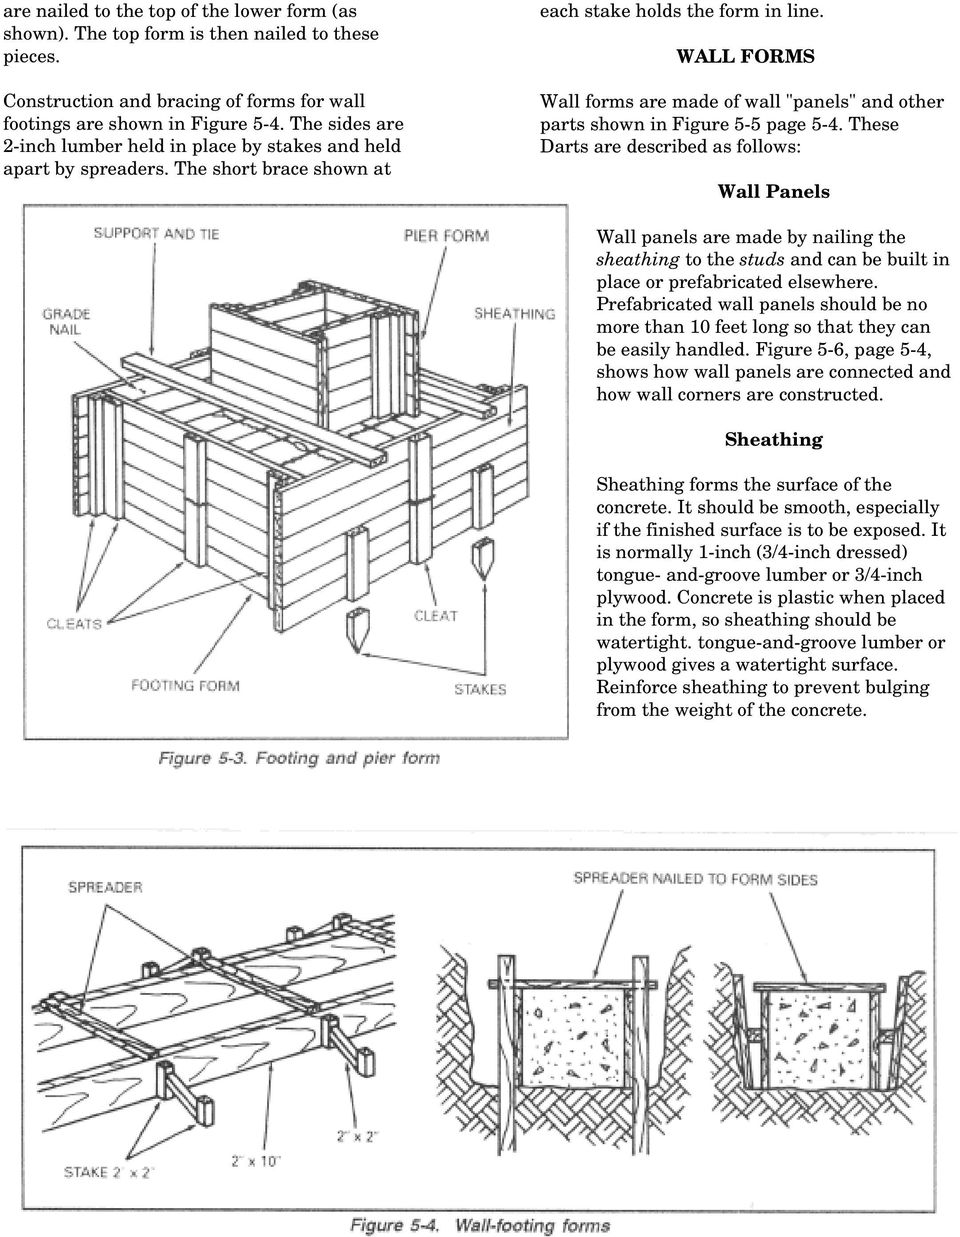 "WALL FORMS Wall forms are made of wall ""panels"" and other parts shown in Figure 5-5 page 5-4."